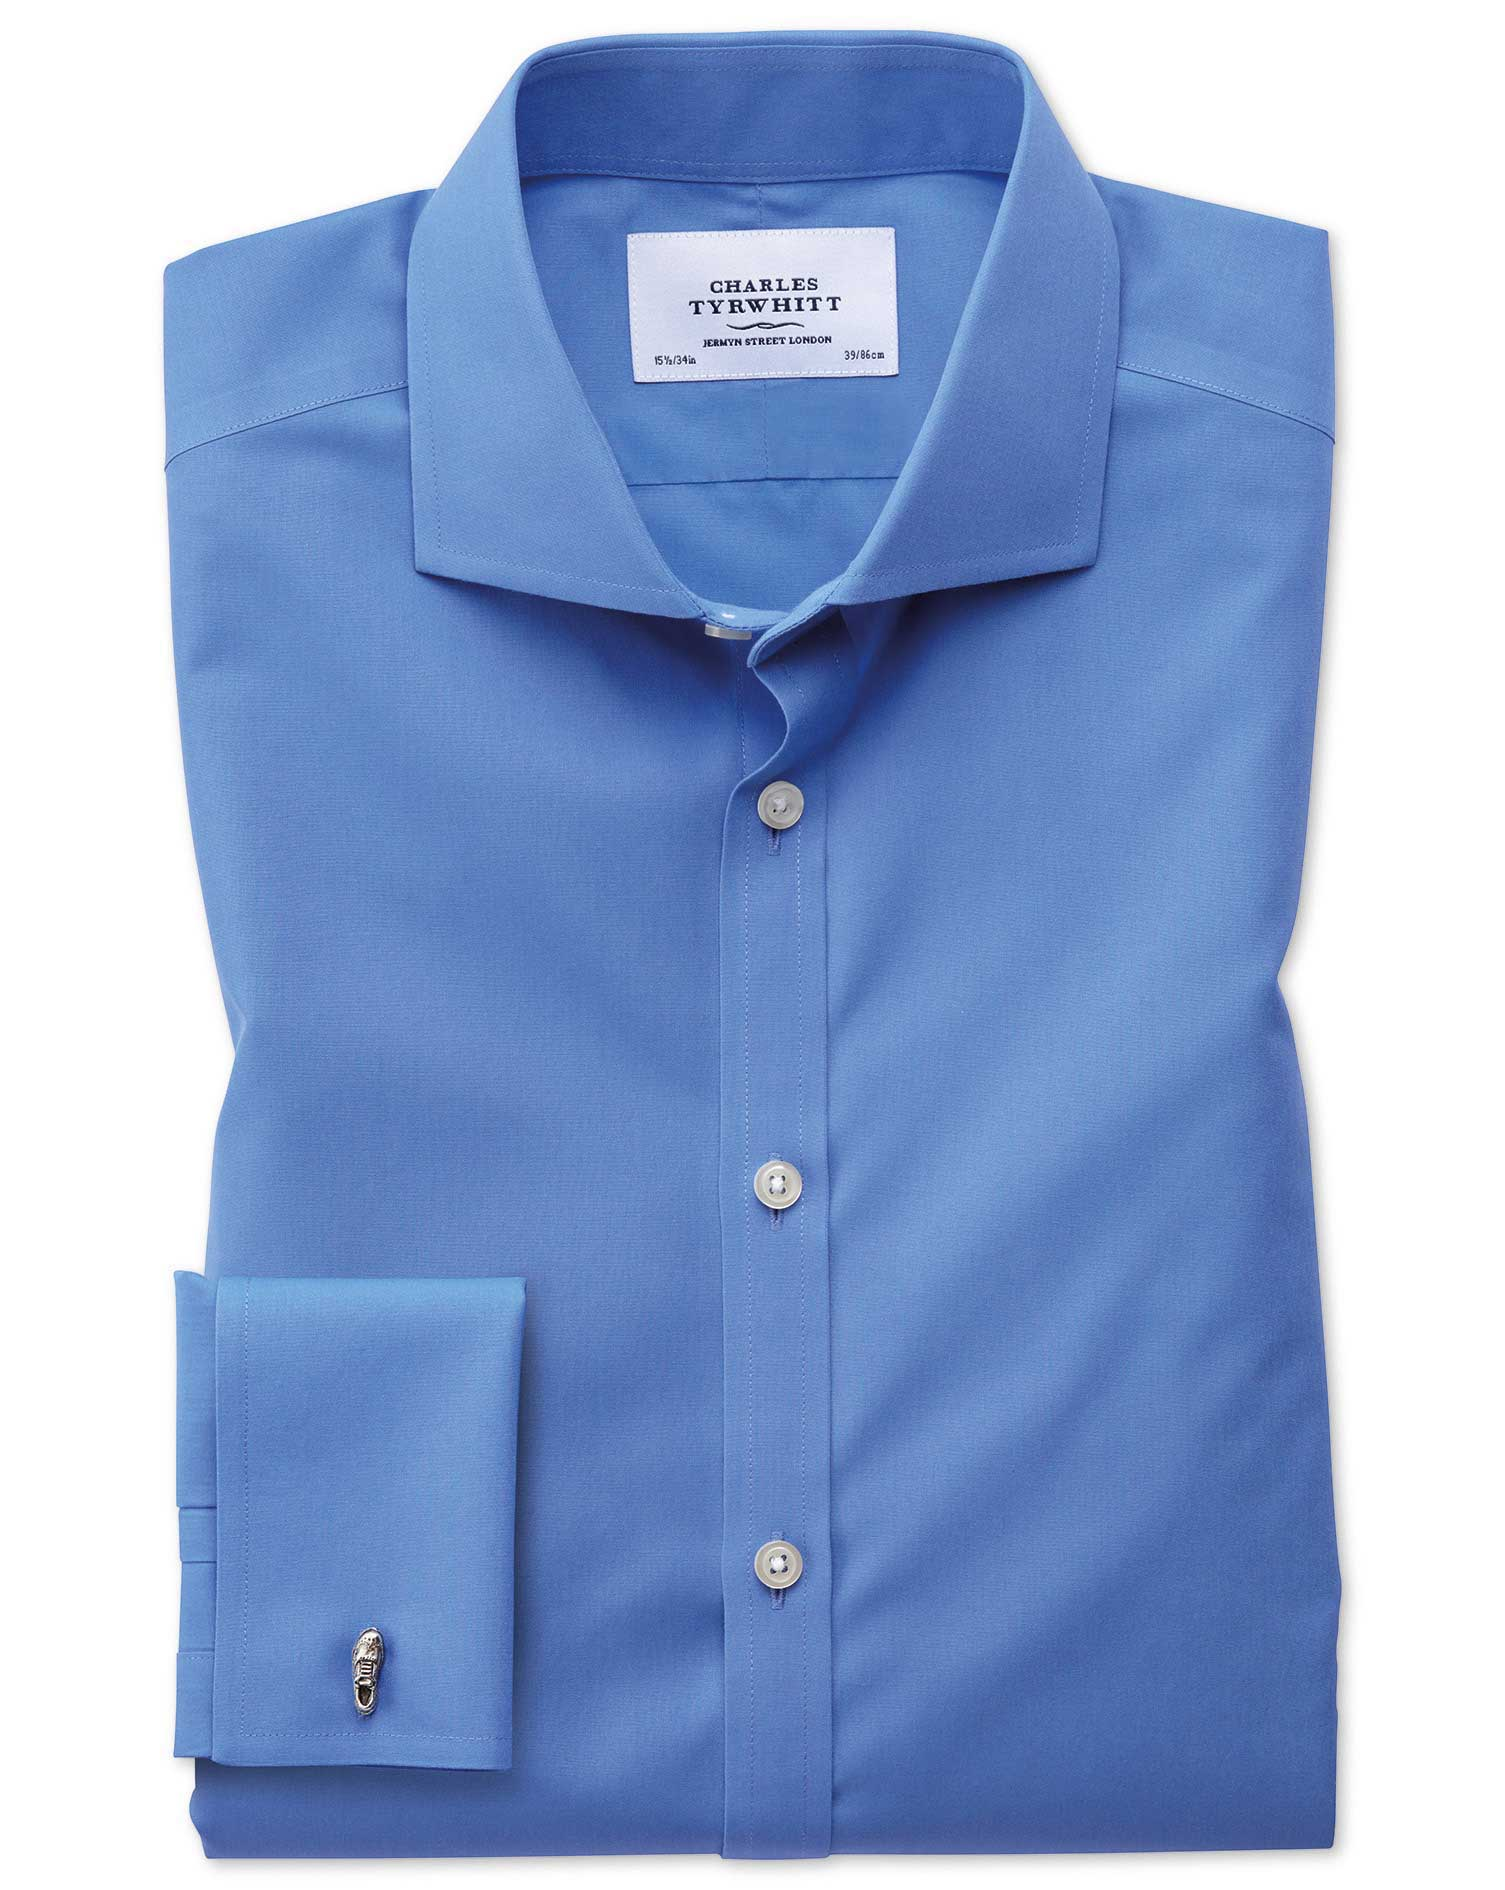 Extra Slim Fit Cutaway Non-Iron Poplin Blue Cotton Formal Shirt Single Cuff Size 15.5/37 by Charles